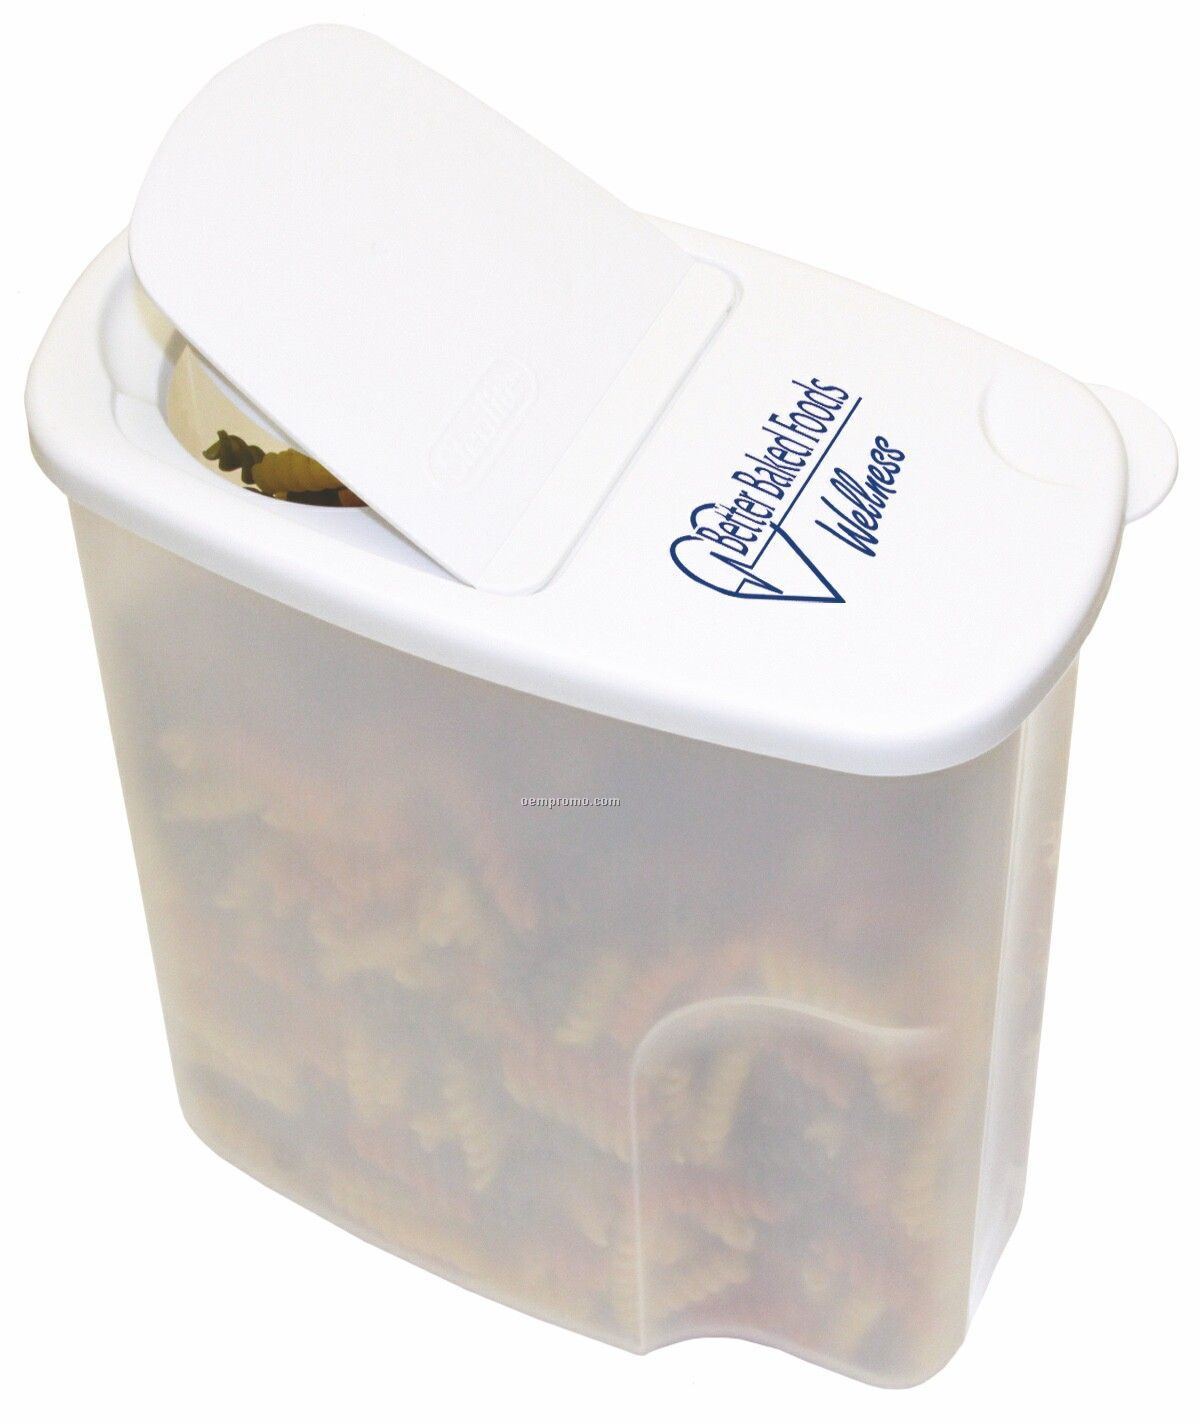 4 Qt Dry Food Container